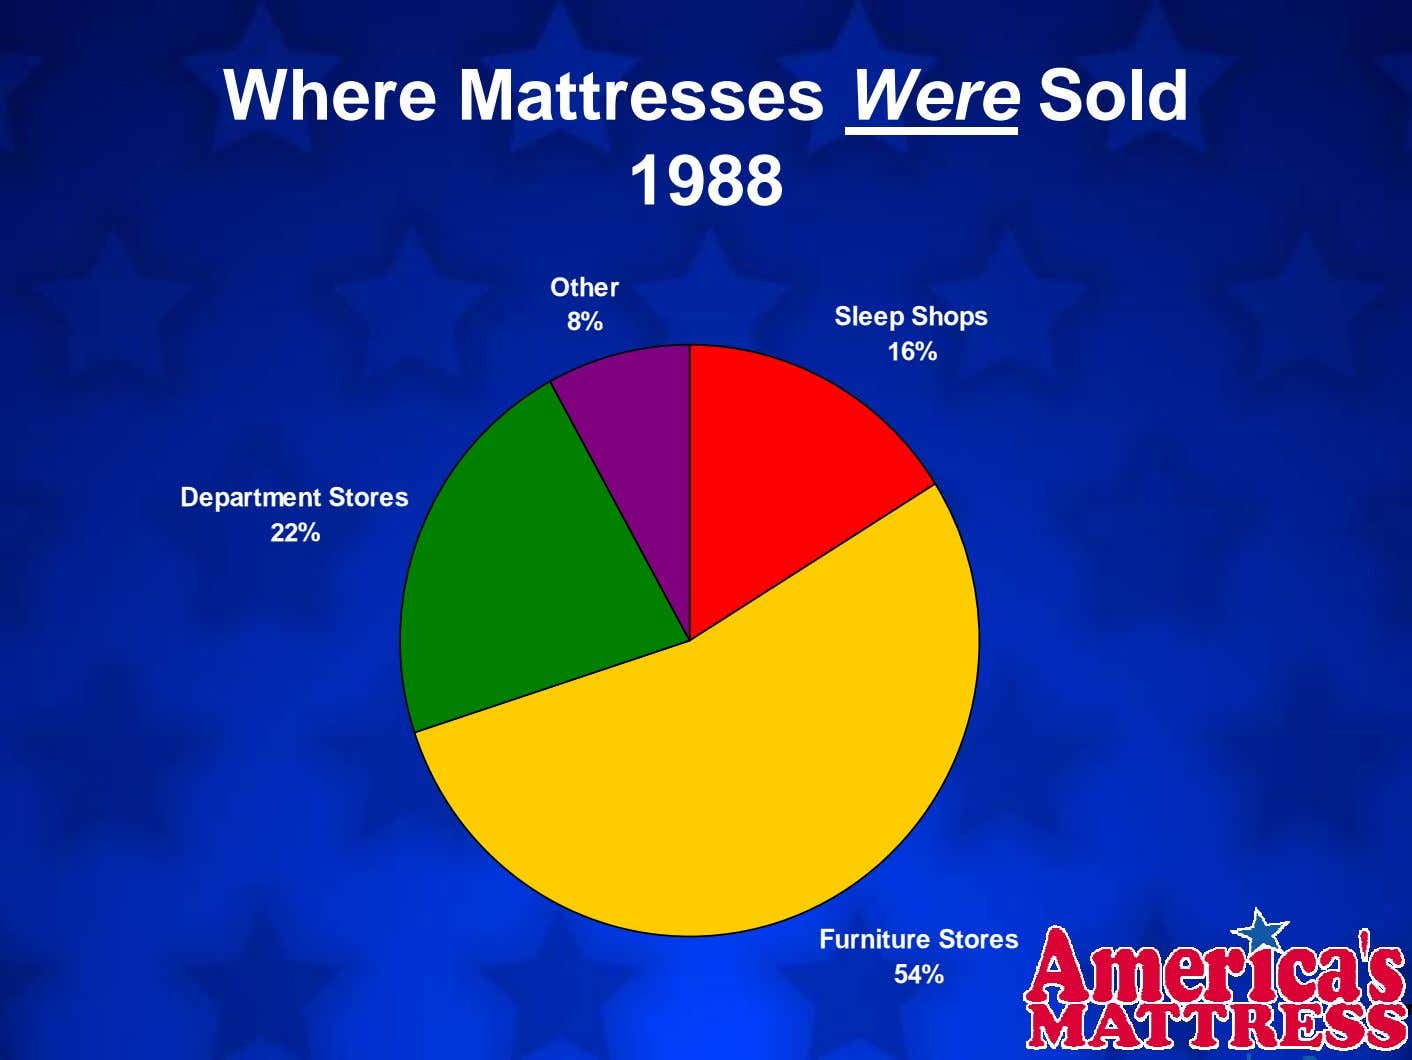 Where Mattresses Were Sold 1988 Other 8% Sleep Shops 16% Department Stores 22% Furniture Stores